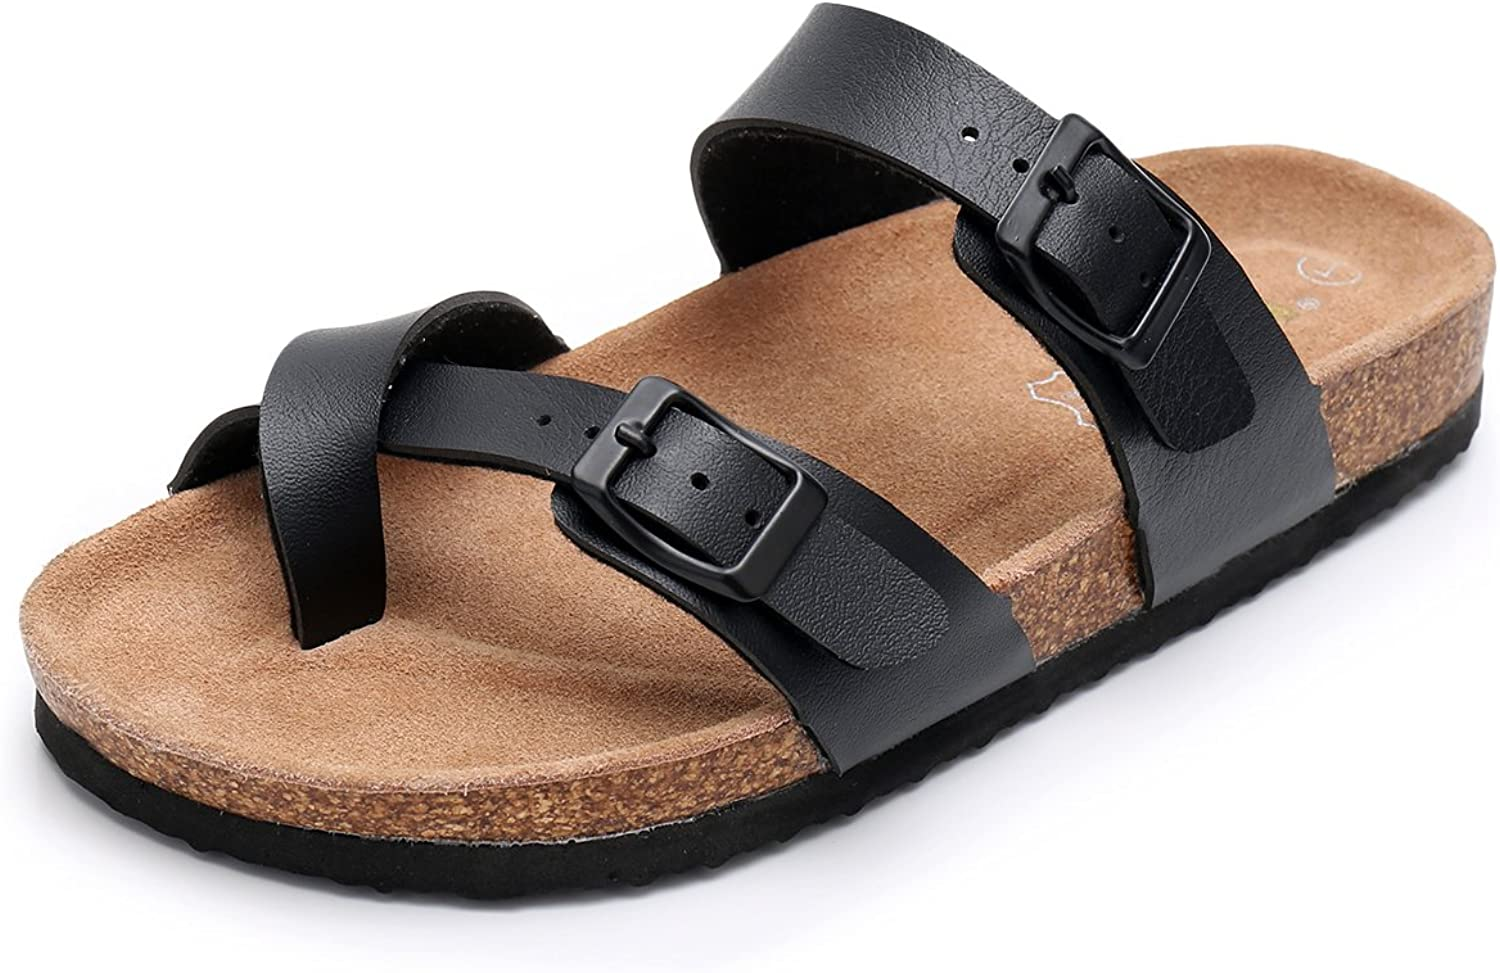 Womens Slide Flat Cork Sandals with Adjustable Strap Buckle Open Toe Slippers Suede Footbed